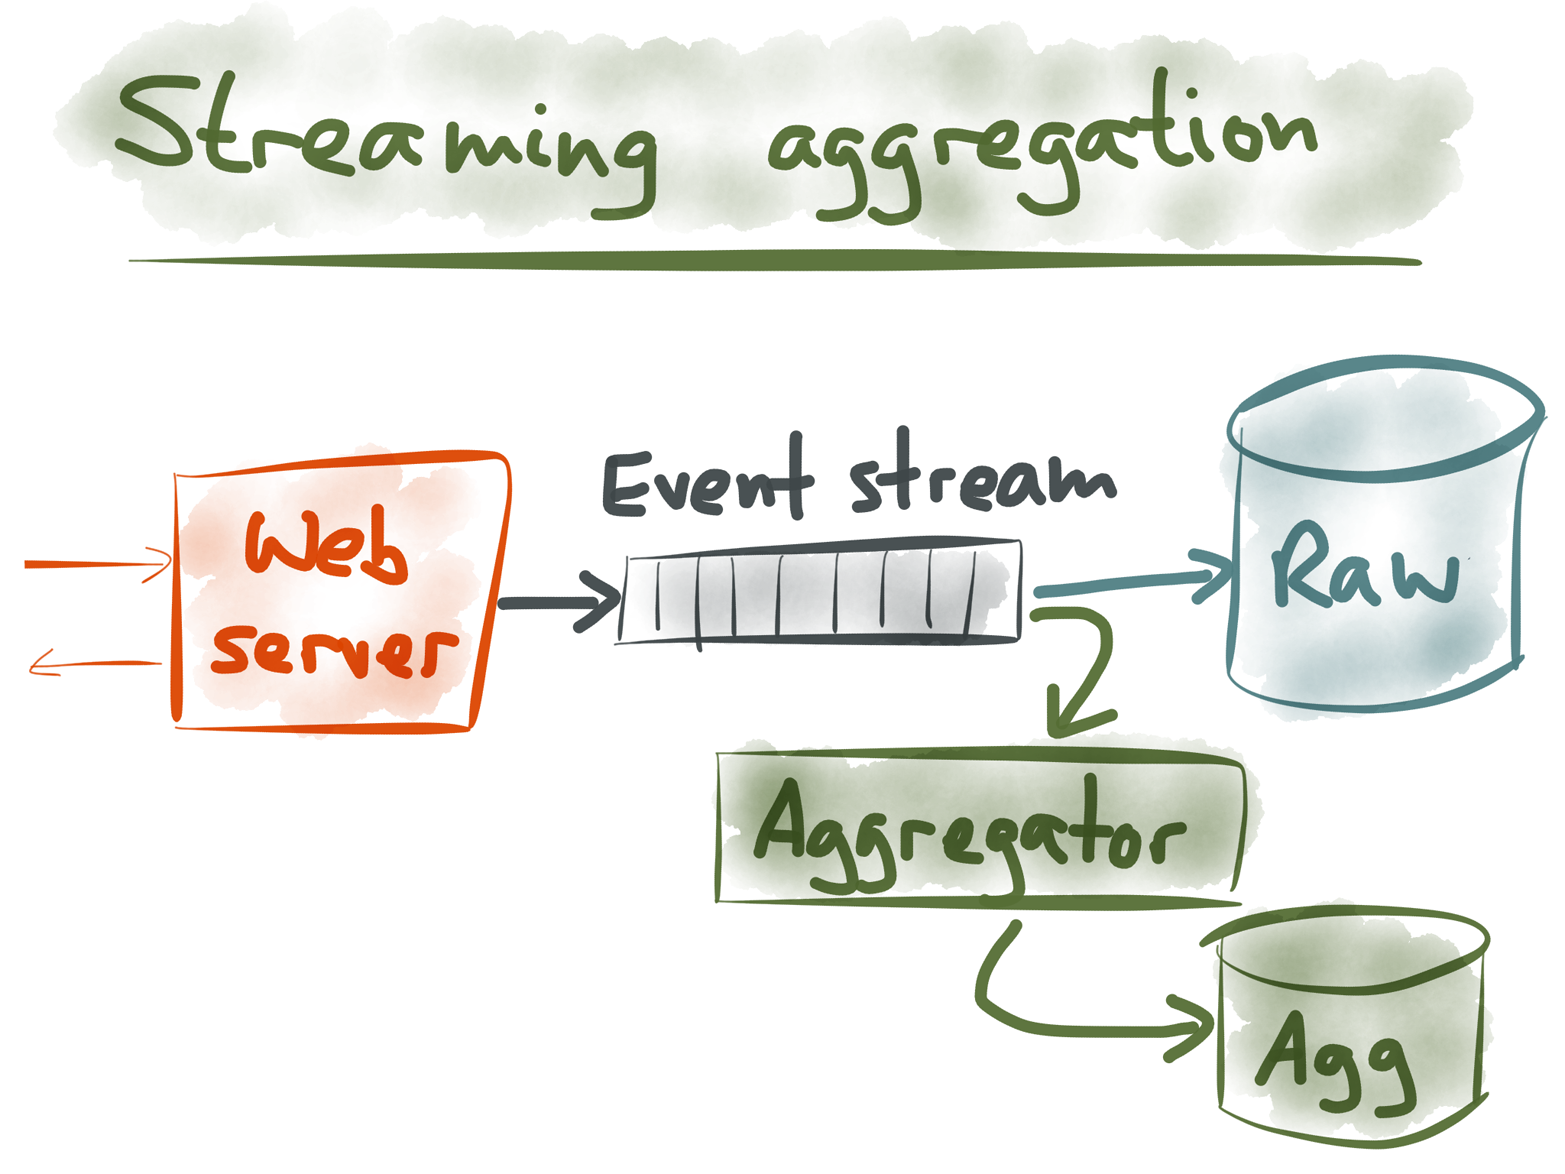 Implementing streaming aggregation with an event stream.